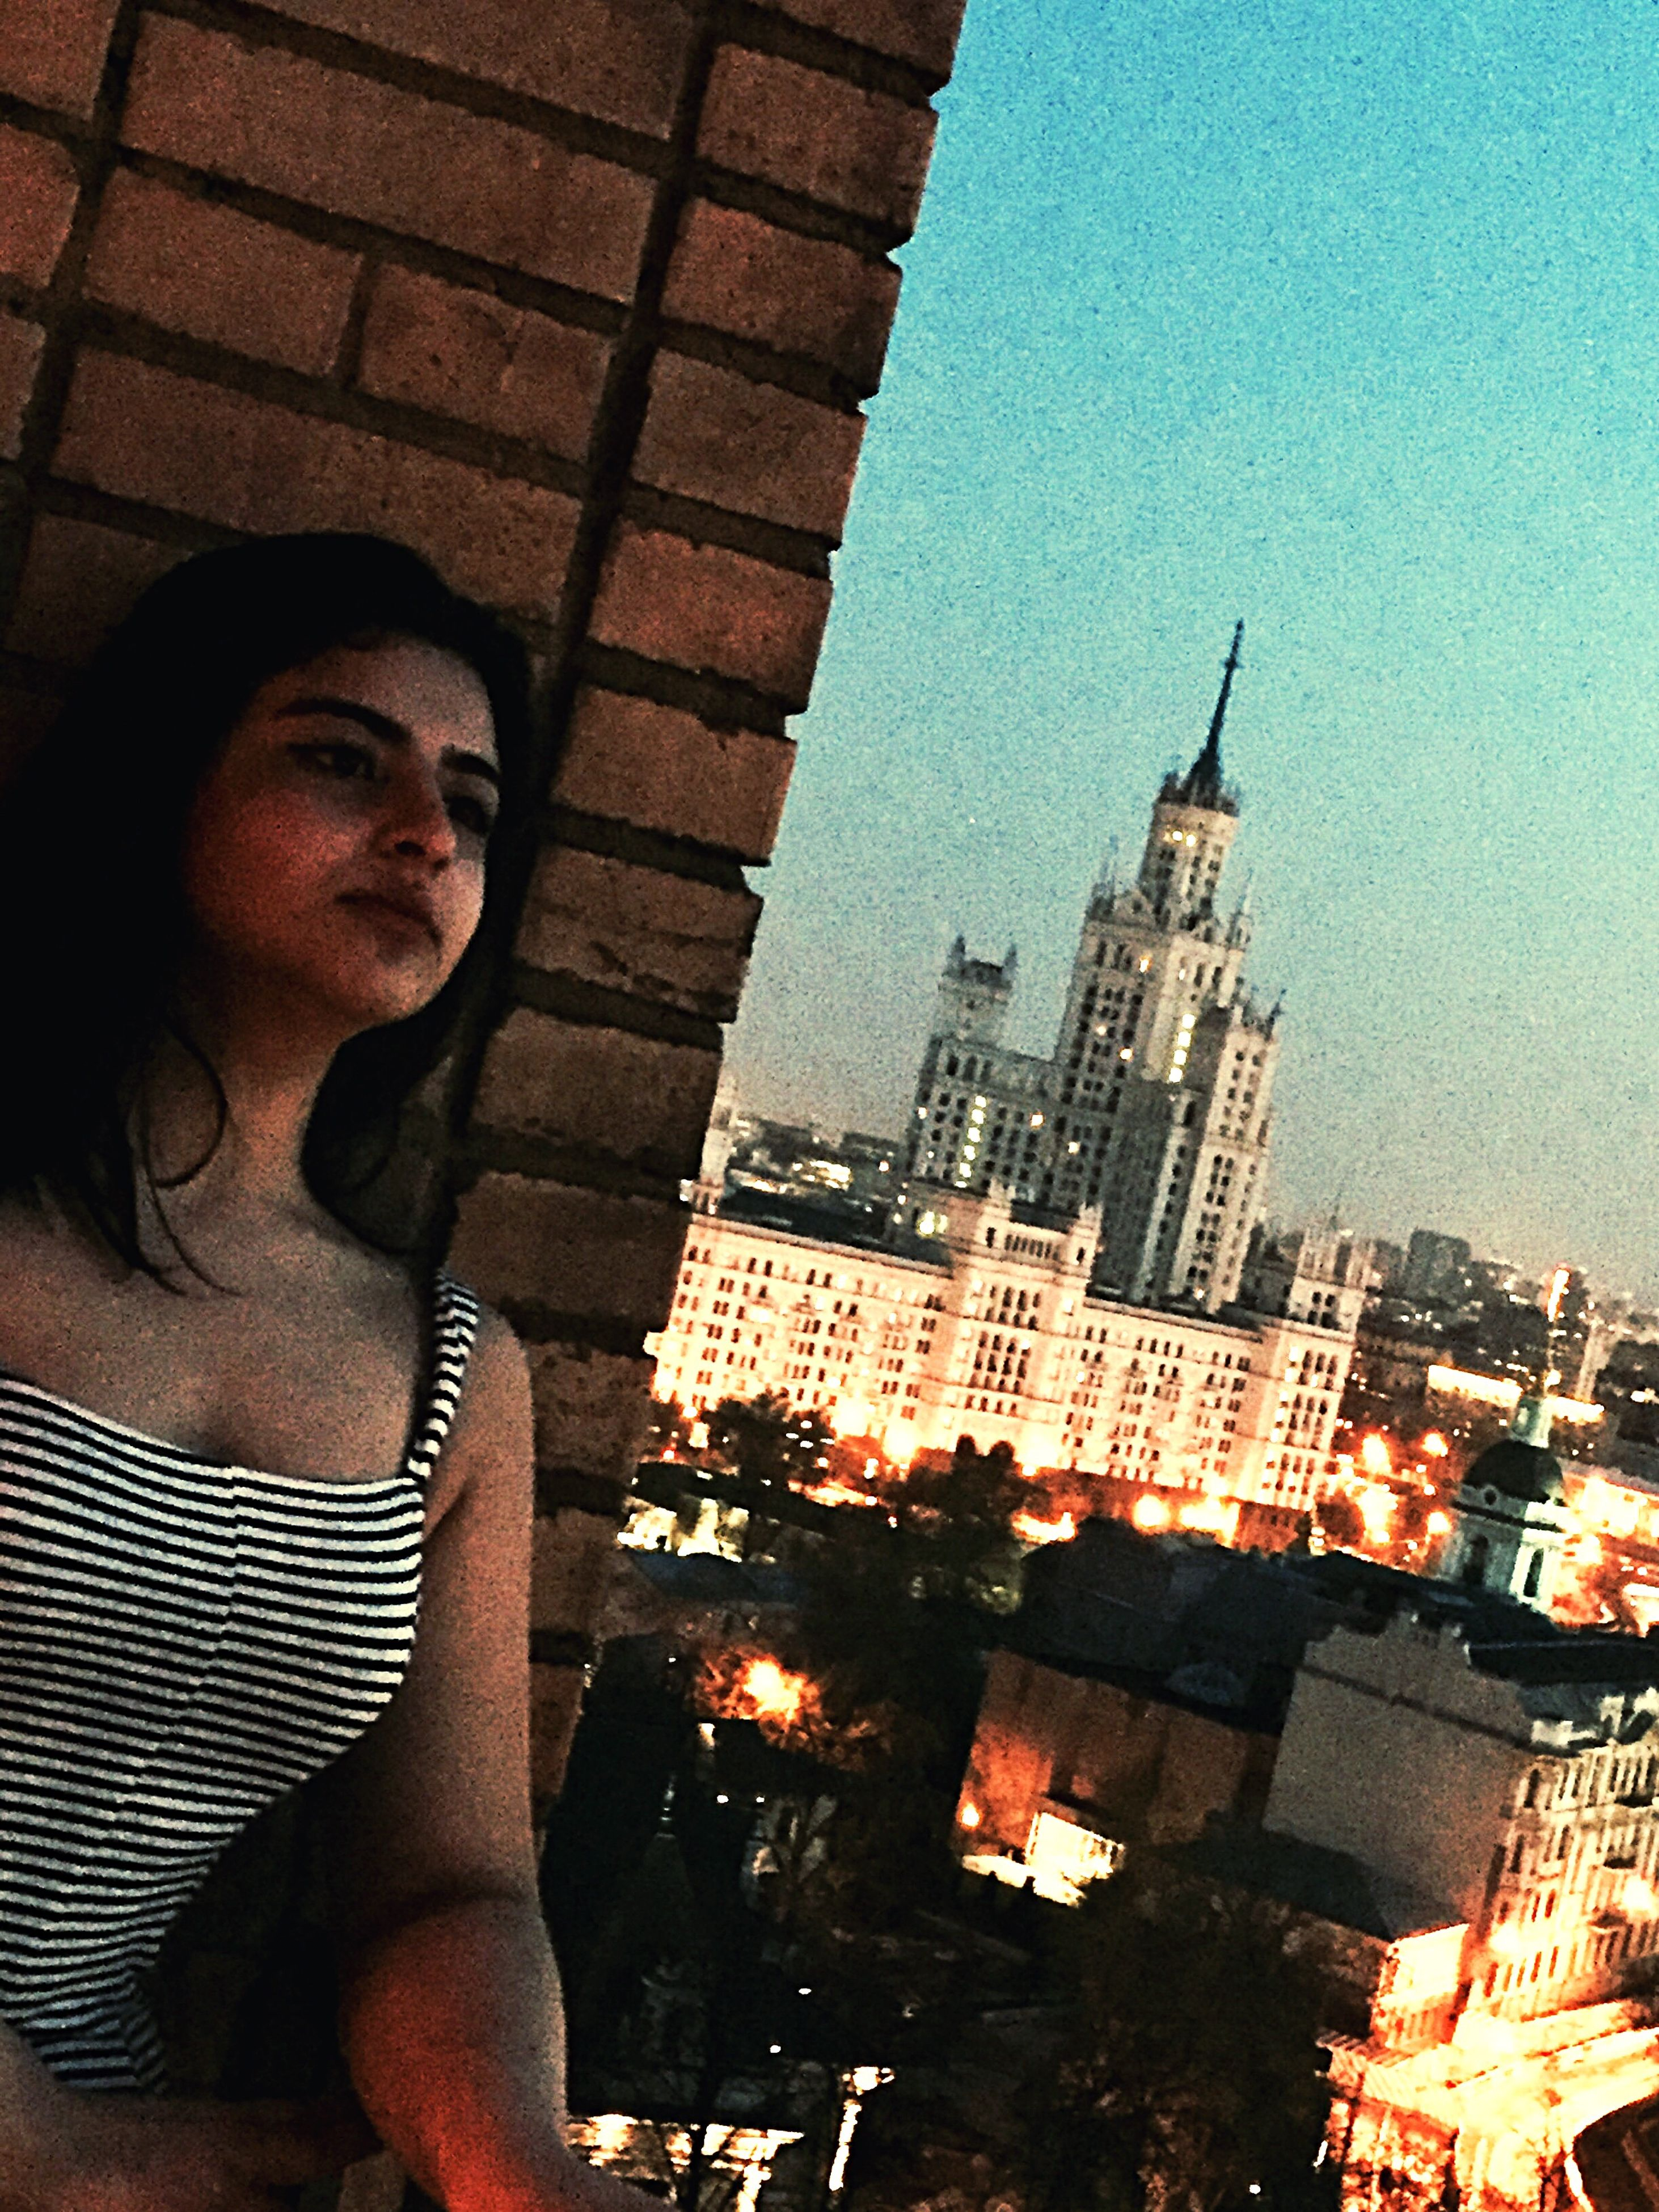 architecture, building exterior, built structure, real people, one person, outdoors, night, standing, lifestyles, low angle view, young adult, leisure activity, city, illuminated, clear sky, cityscape, sky, young women, people